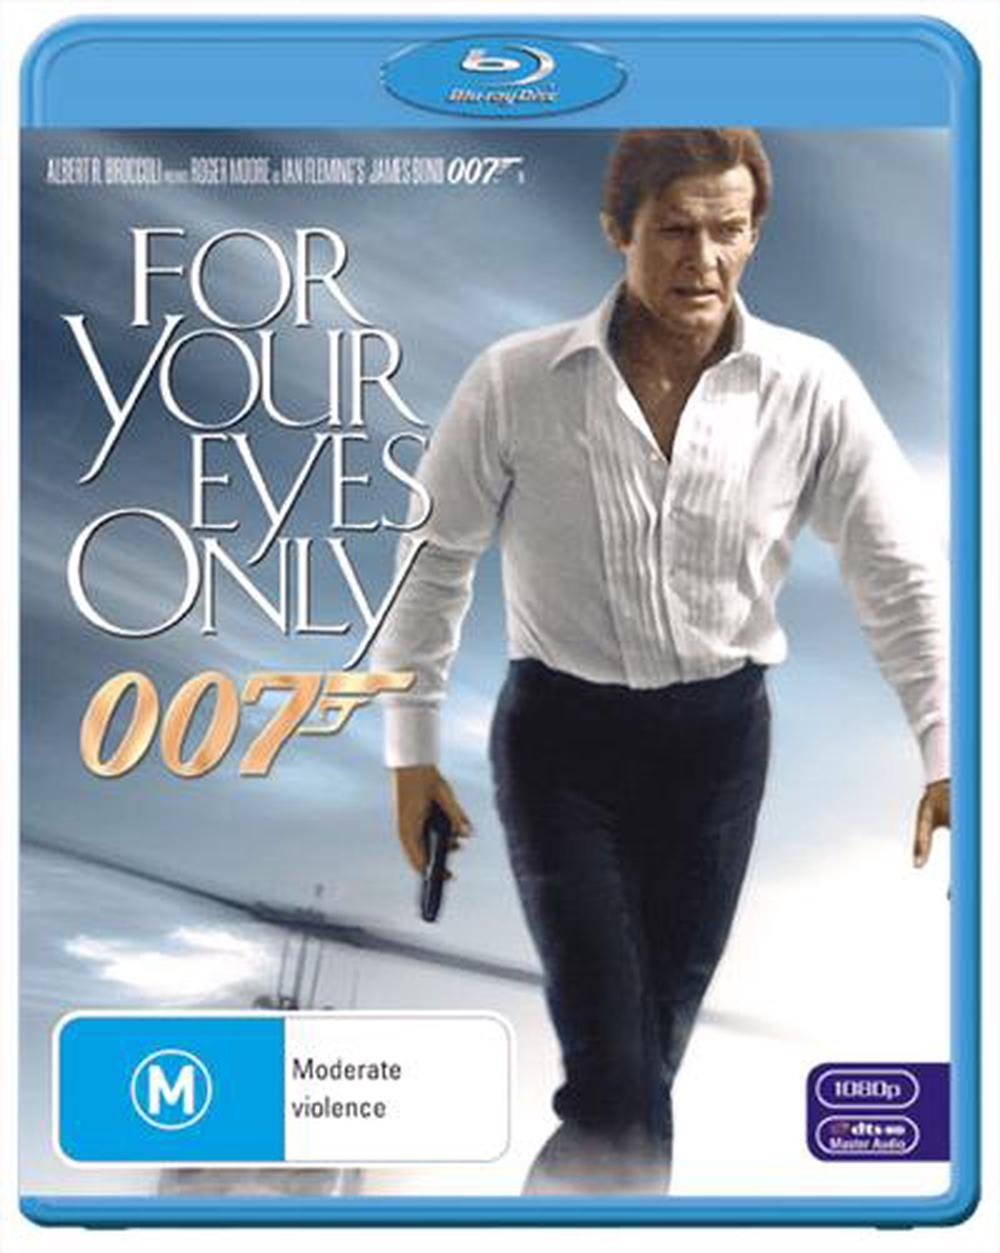 For Your Eyes Only (2012 Re-release)